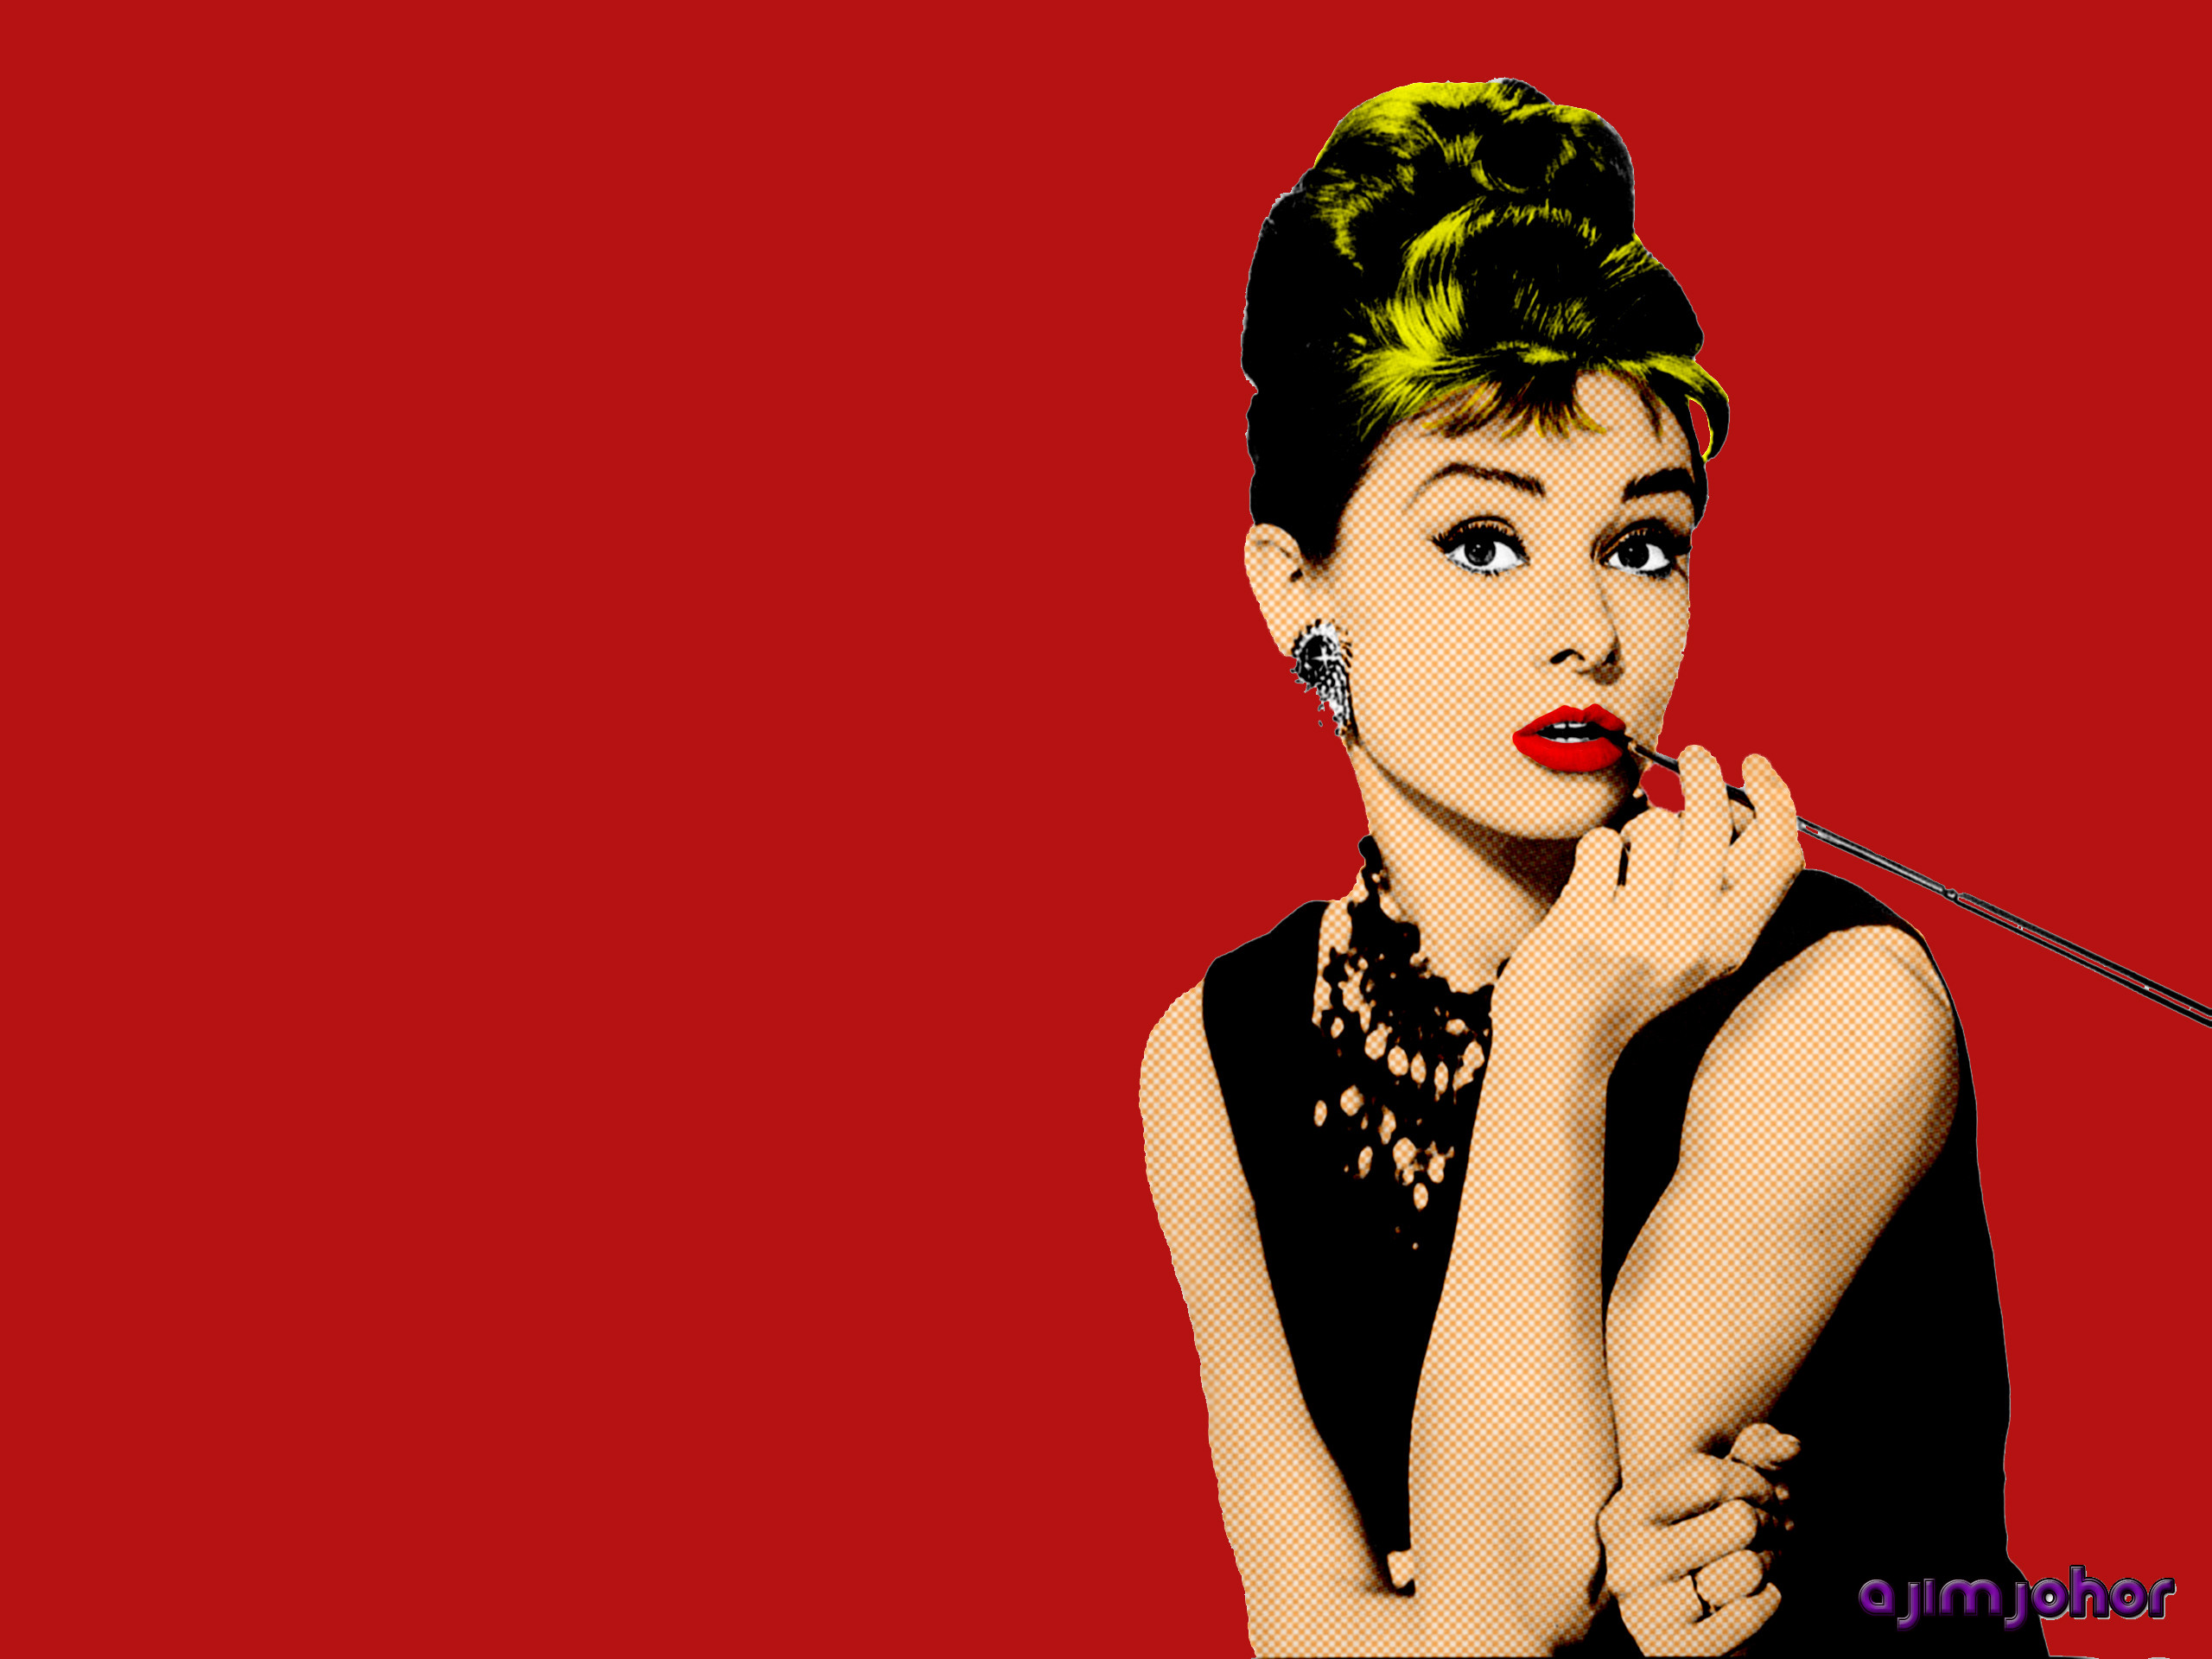 Audrey Hepburn Wallpapers High Resolution and Quality Download 2560x1920